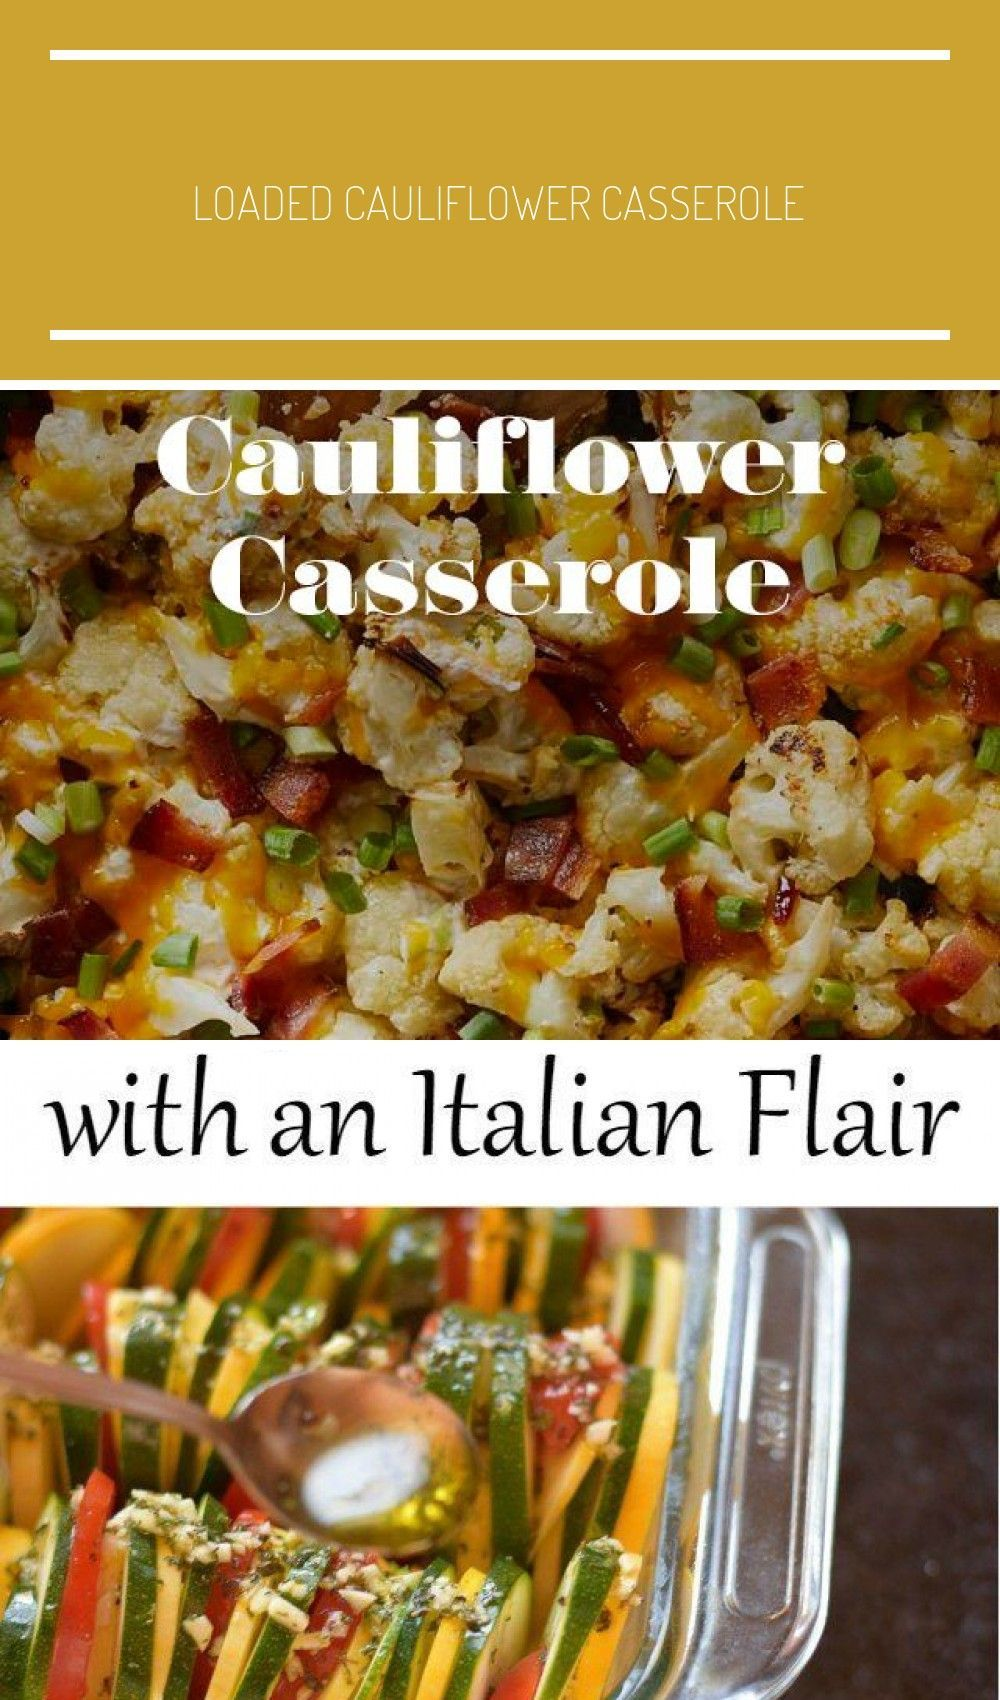 You'll never want to eat roasted cauliflower any other way once you try this tasty recipe. Bacon, s